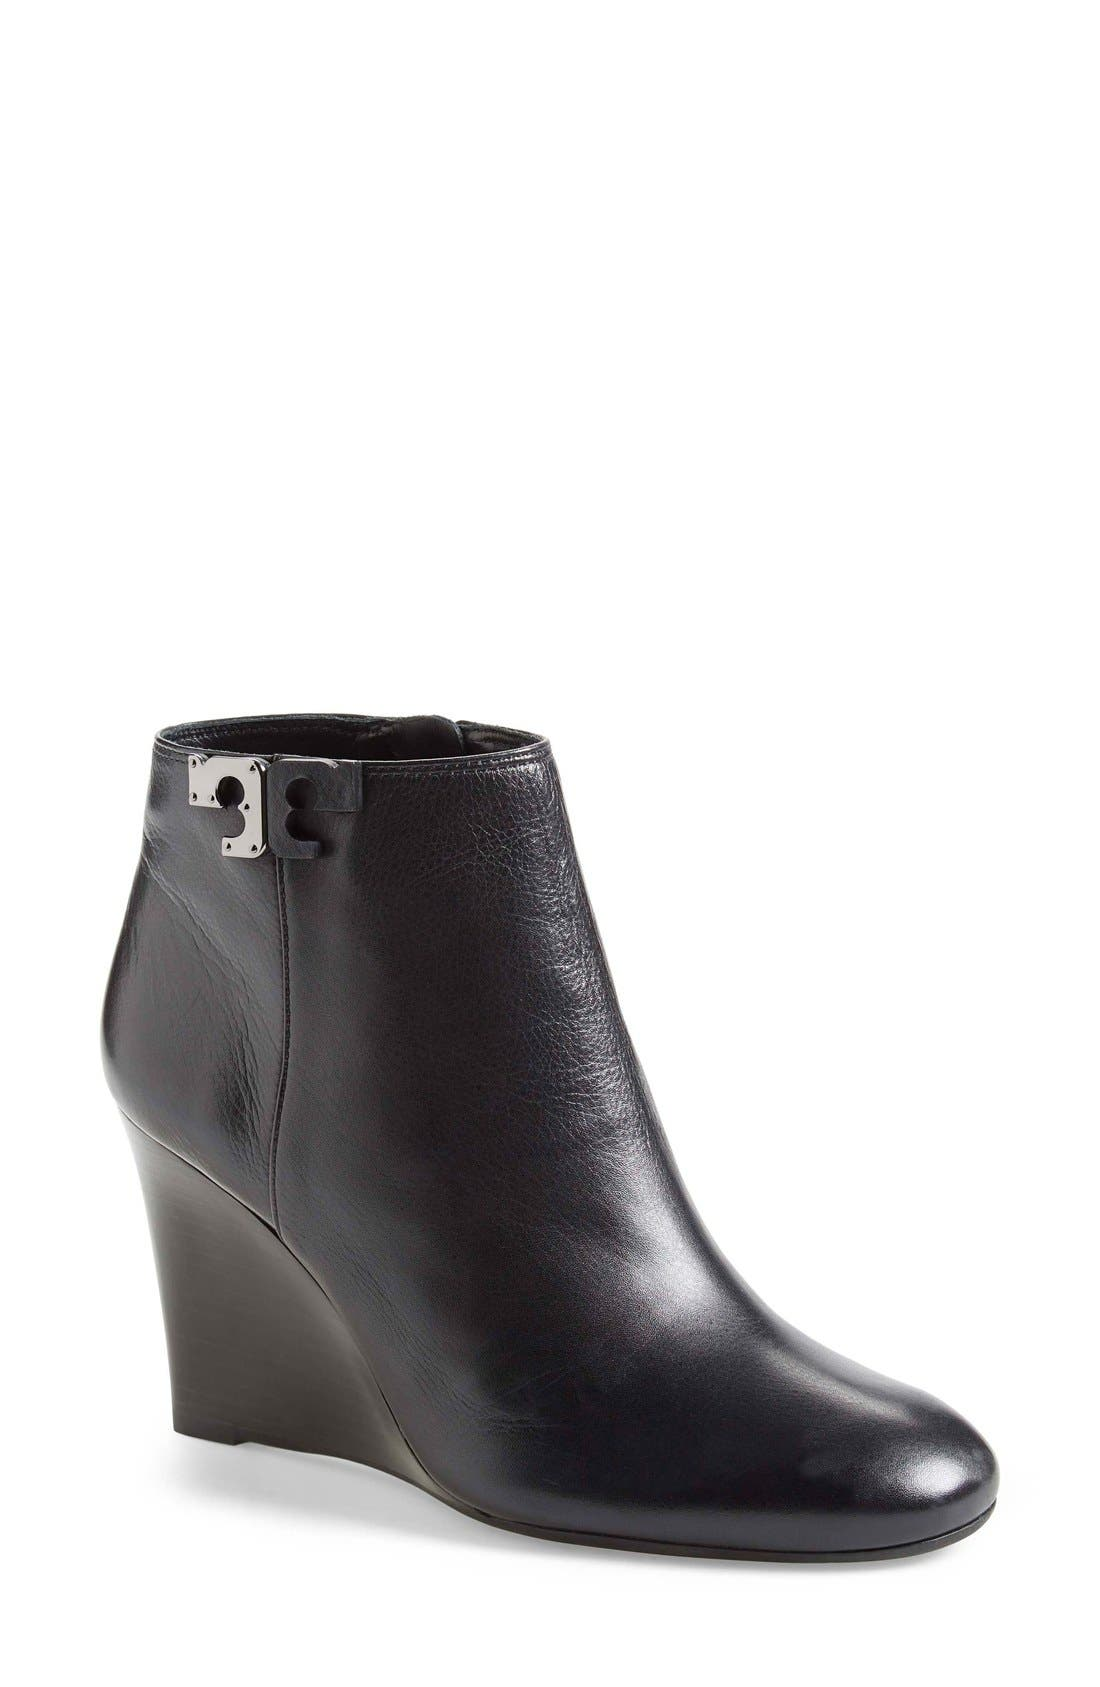 'Lowell' Wedge Bootie,                         Main,                         color, Black Leather